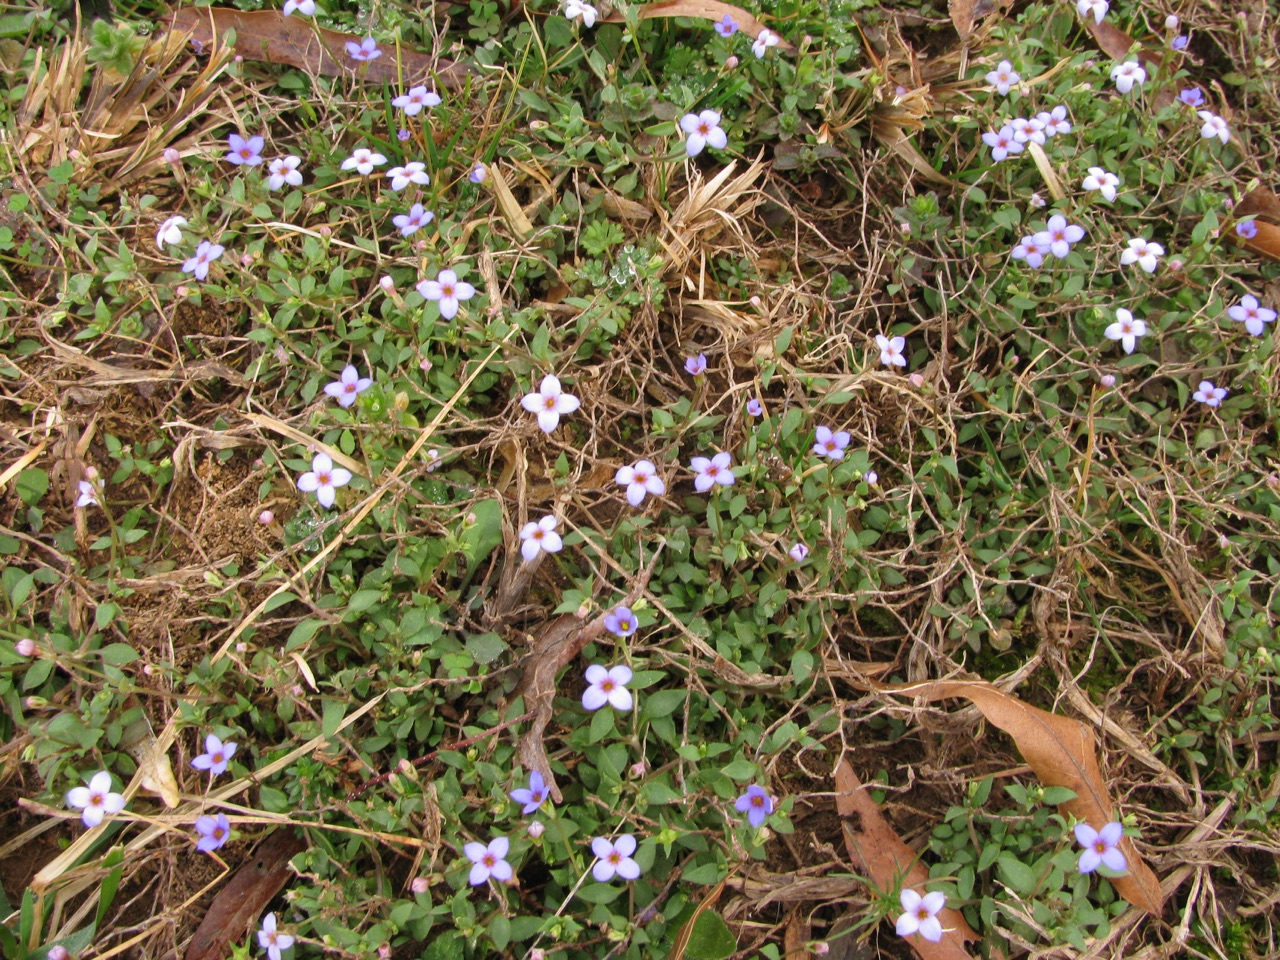 The Scientific Name is Houstonia pusilla. You will likely hear them called Tiny Bluet, Early Bluet. This picture shows the Grows in patches in the lawn in early spring of Houstonia pusilla